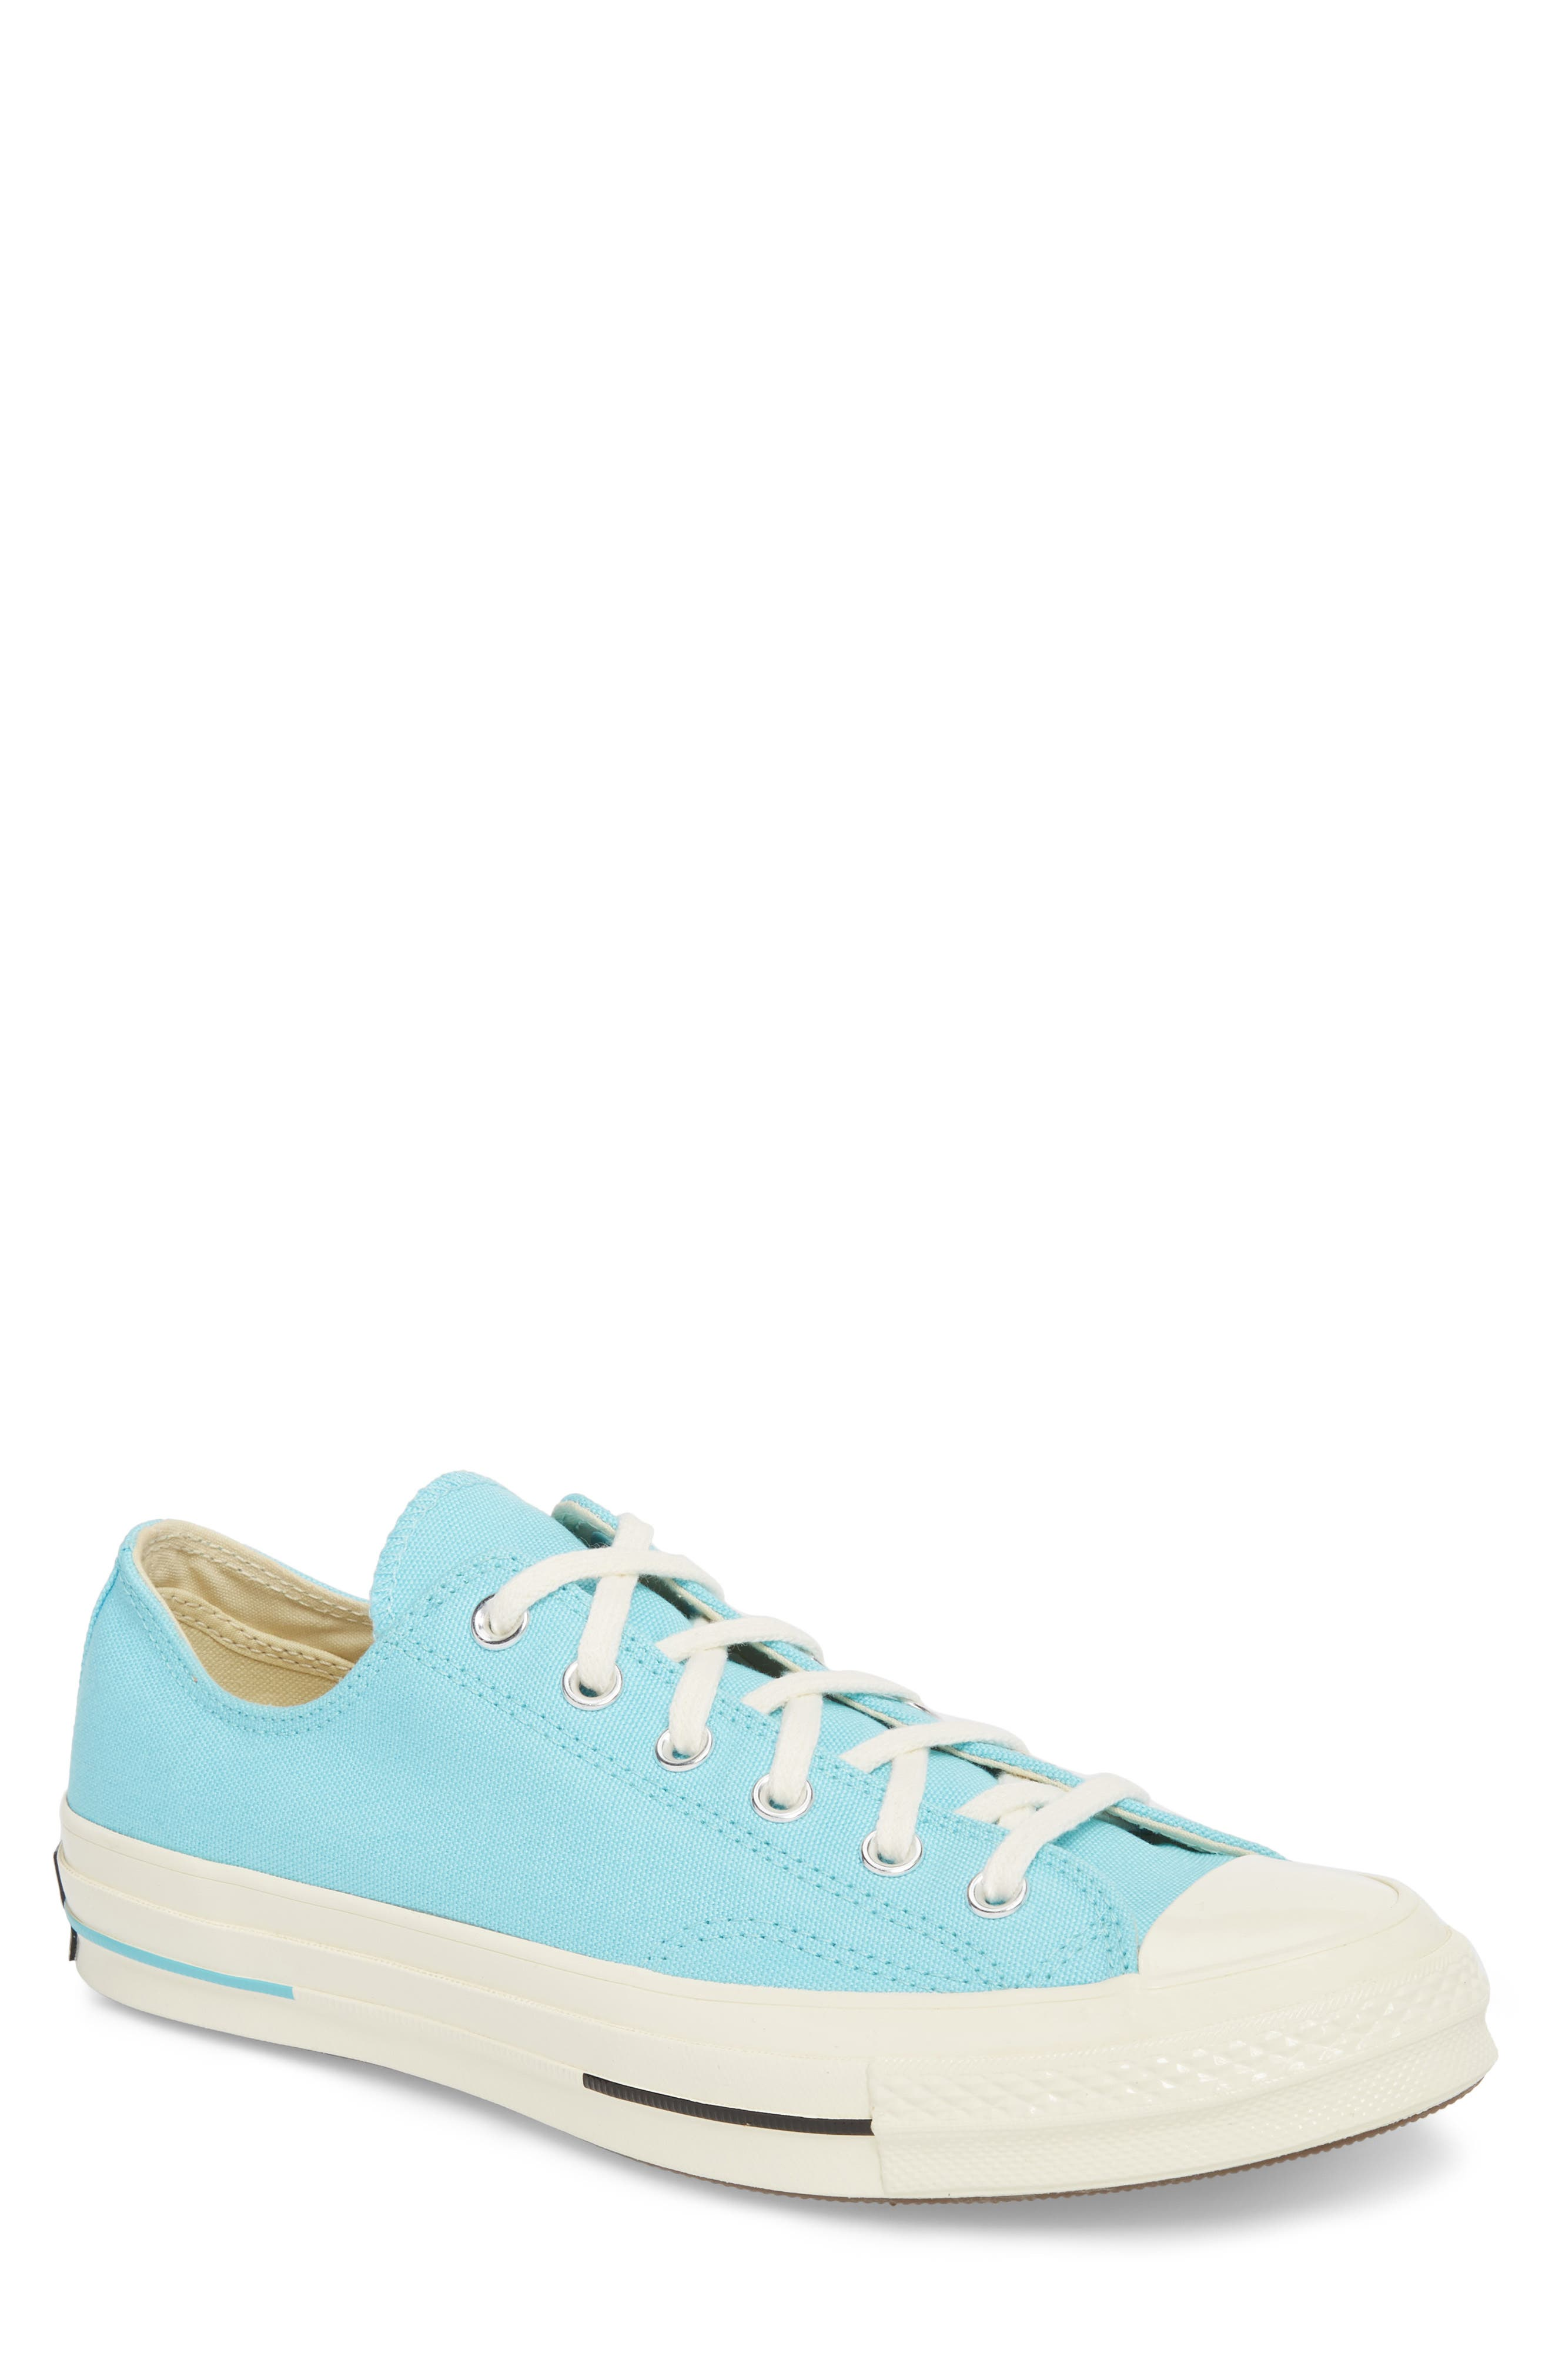 Chuck Taylor<sup>®</sup> All Star<sup>®</sup> 70 Brights Low Top Sneaker,                             Main thumbnail 1, color,                             Beached Aqua